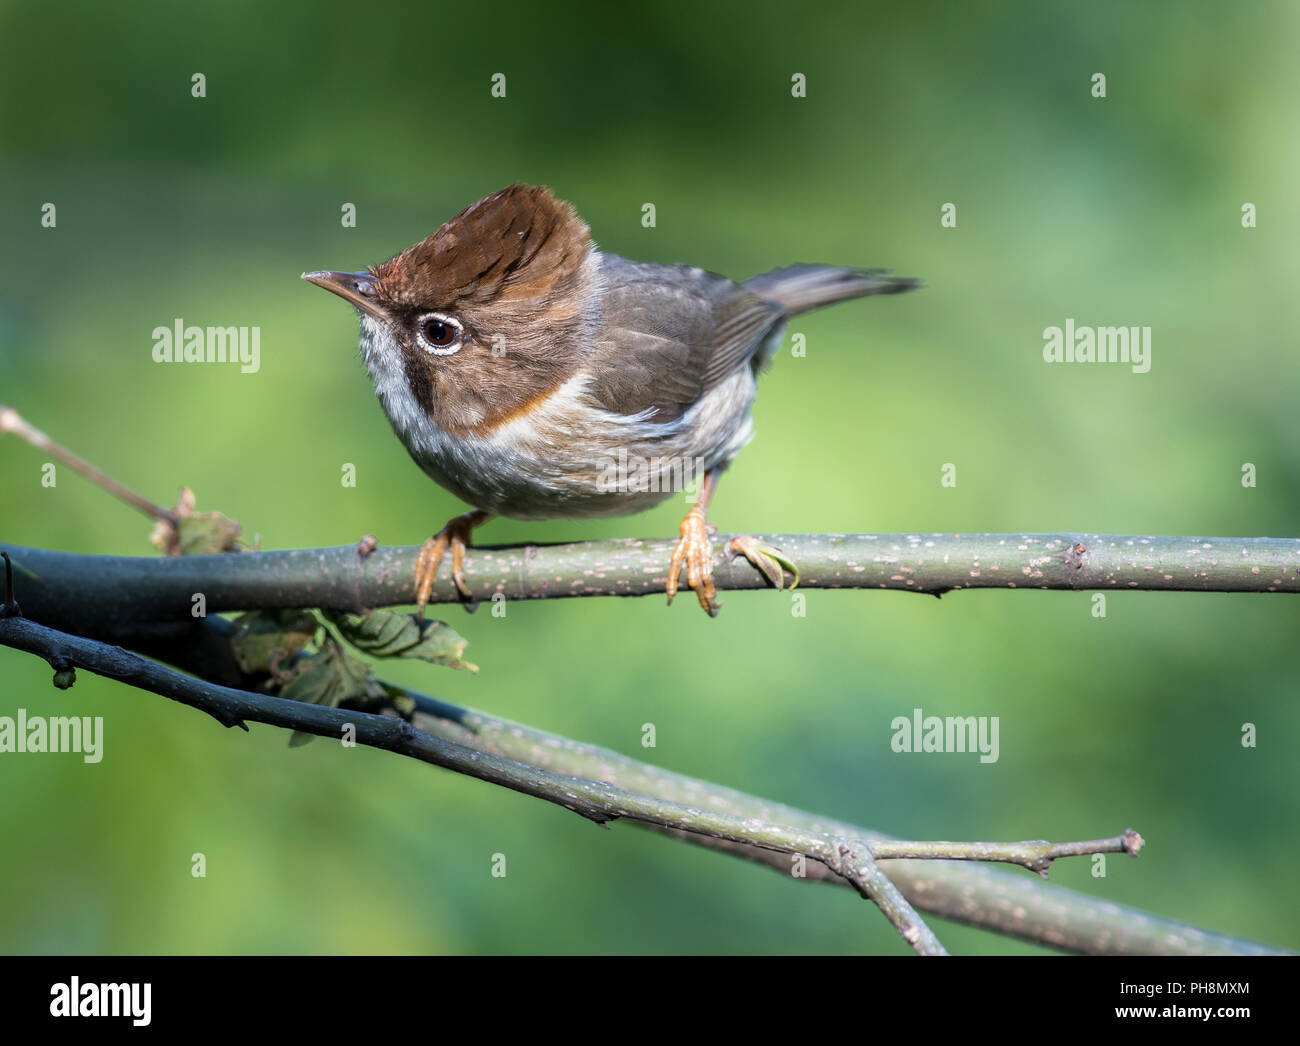 A Whiskered Yuhina, perched on a branch, Himachal Pradesh - Stock Image